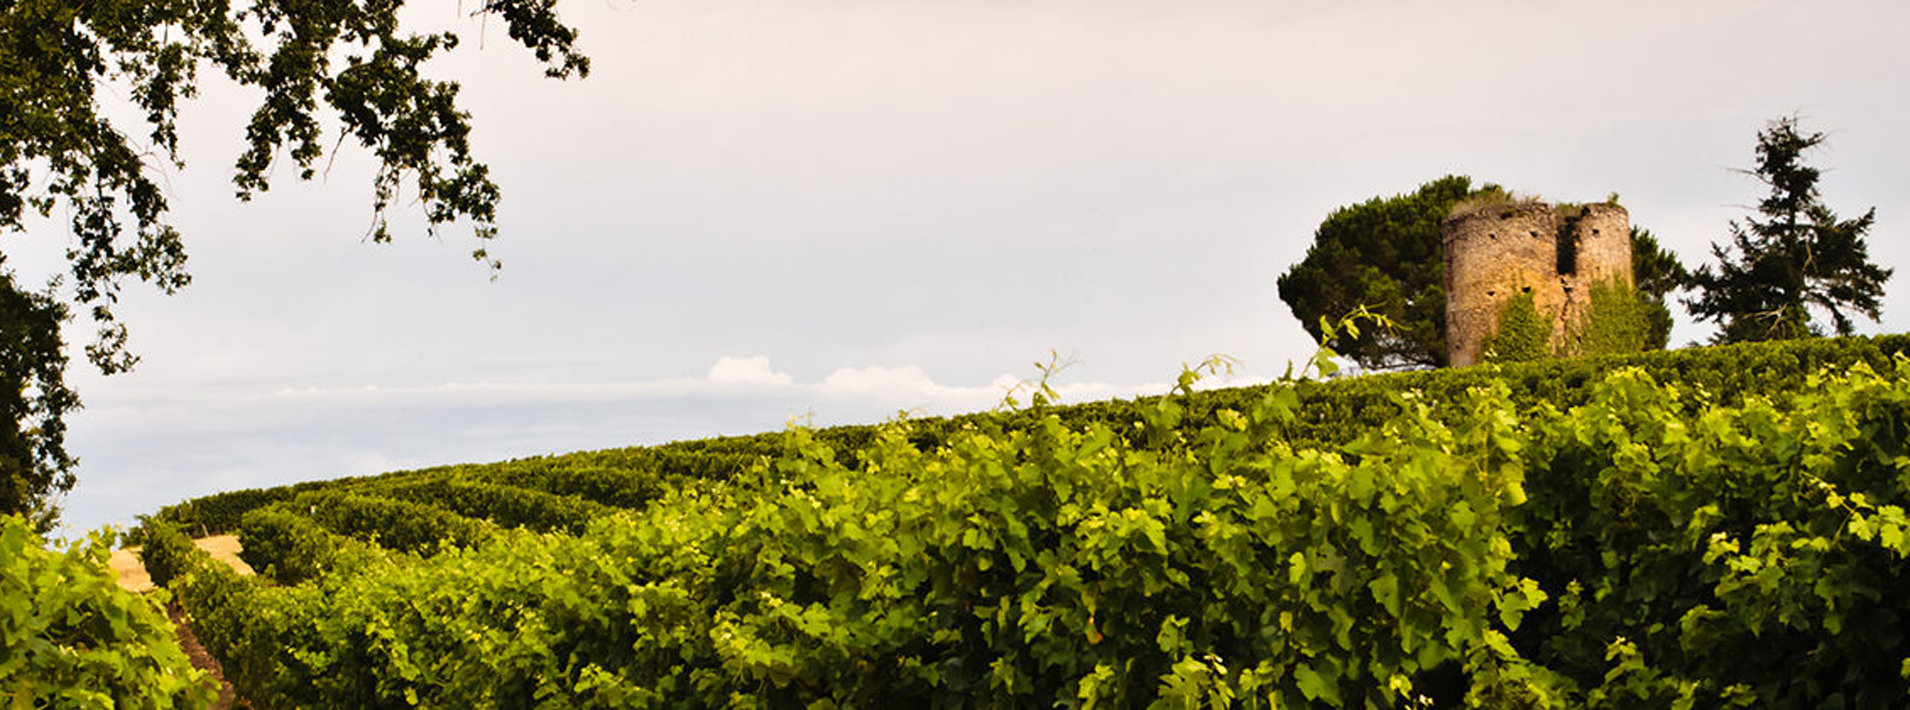 Image of the Vineyards of Hauts De Montrouge, Gers - South West France